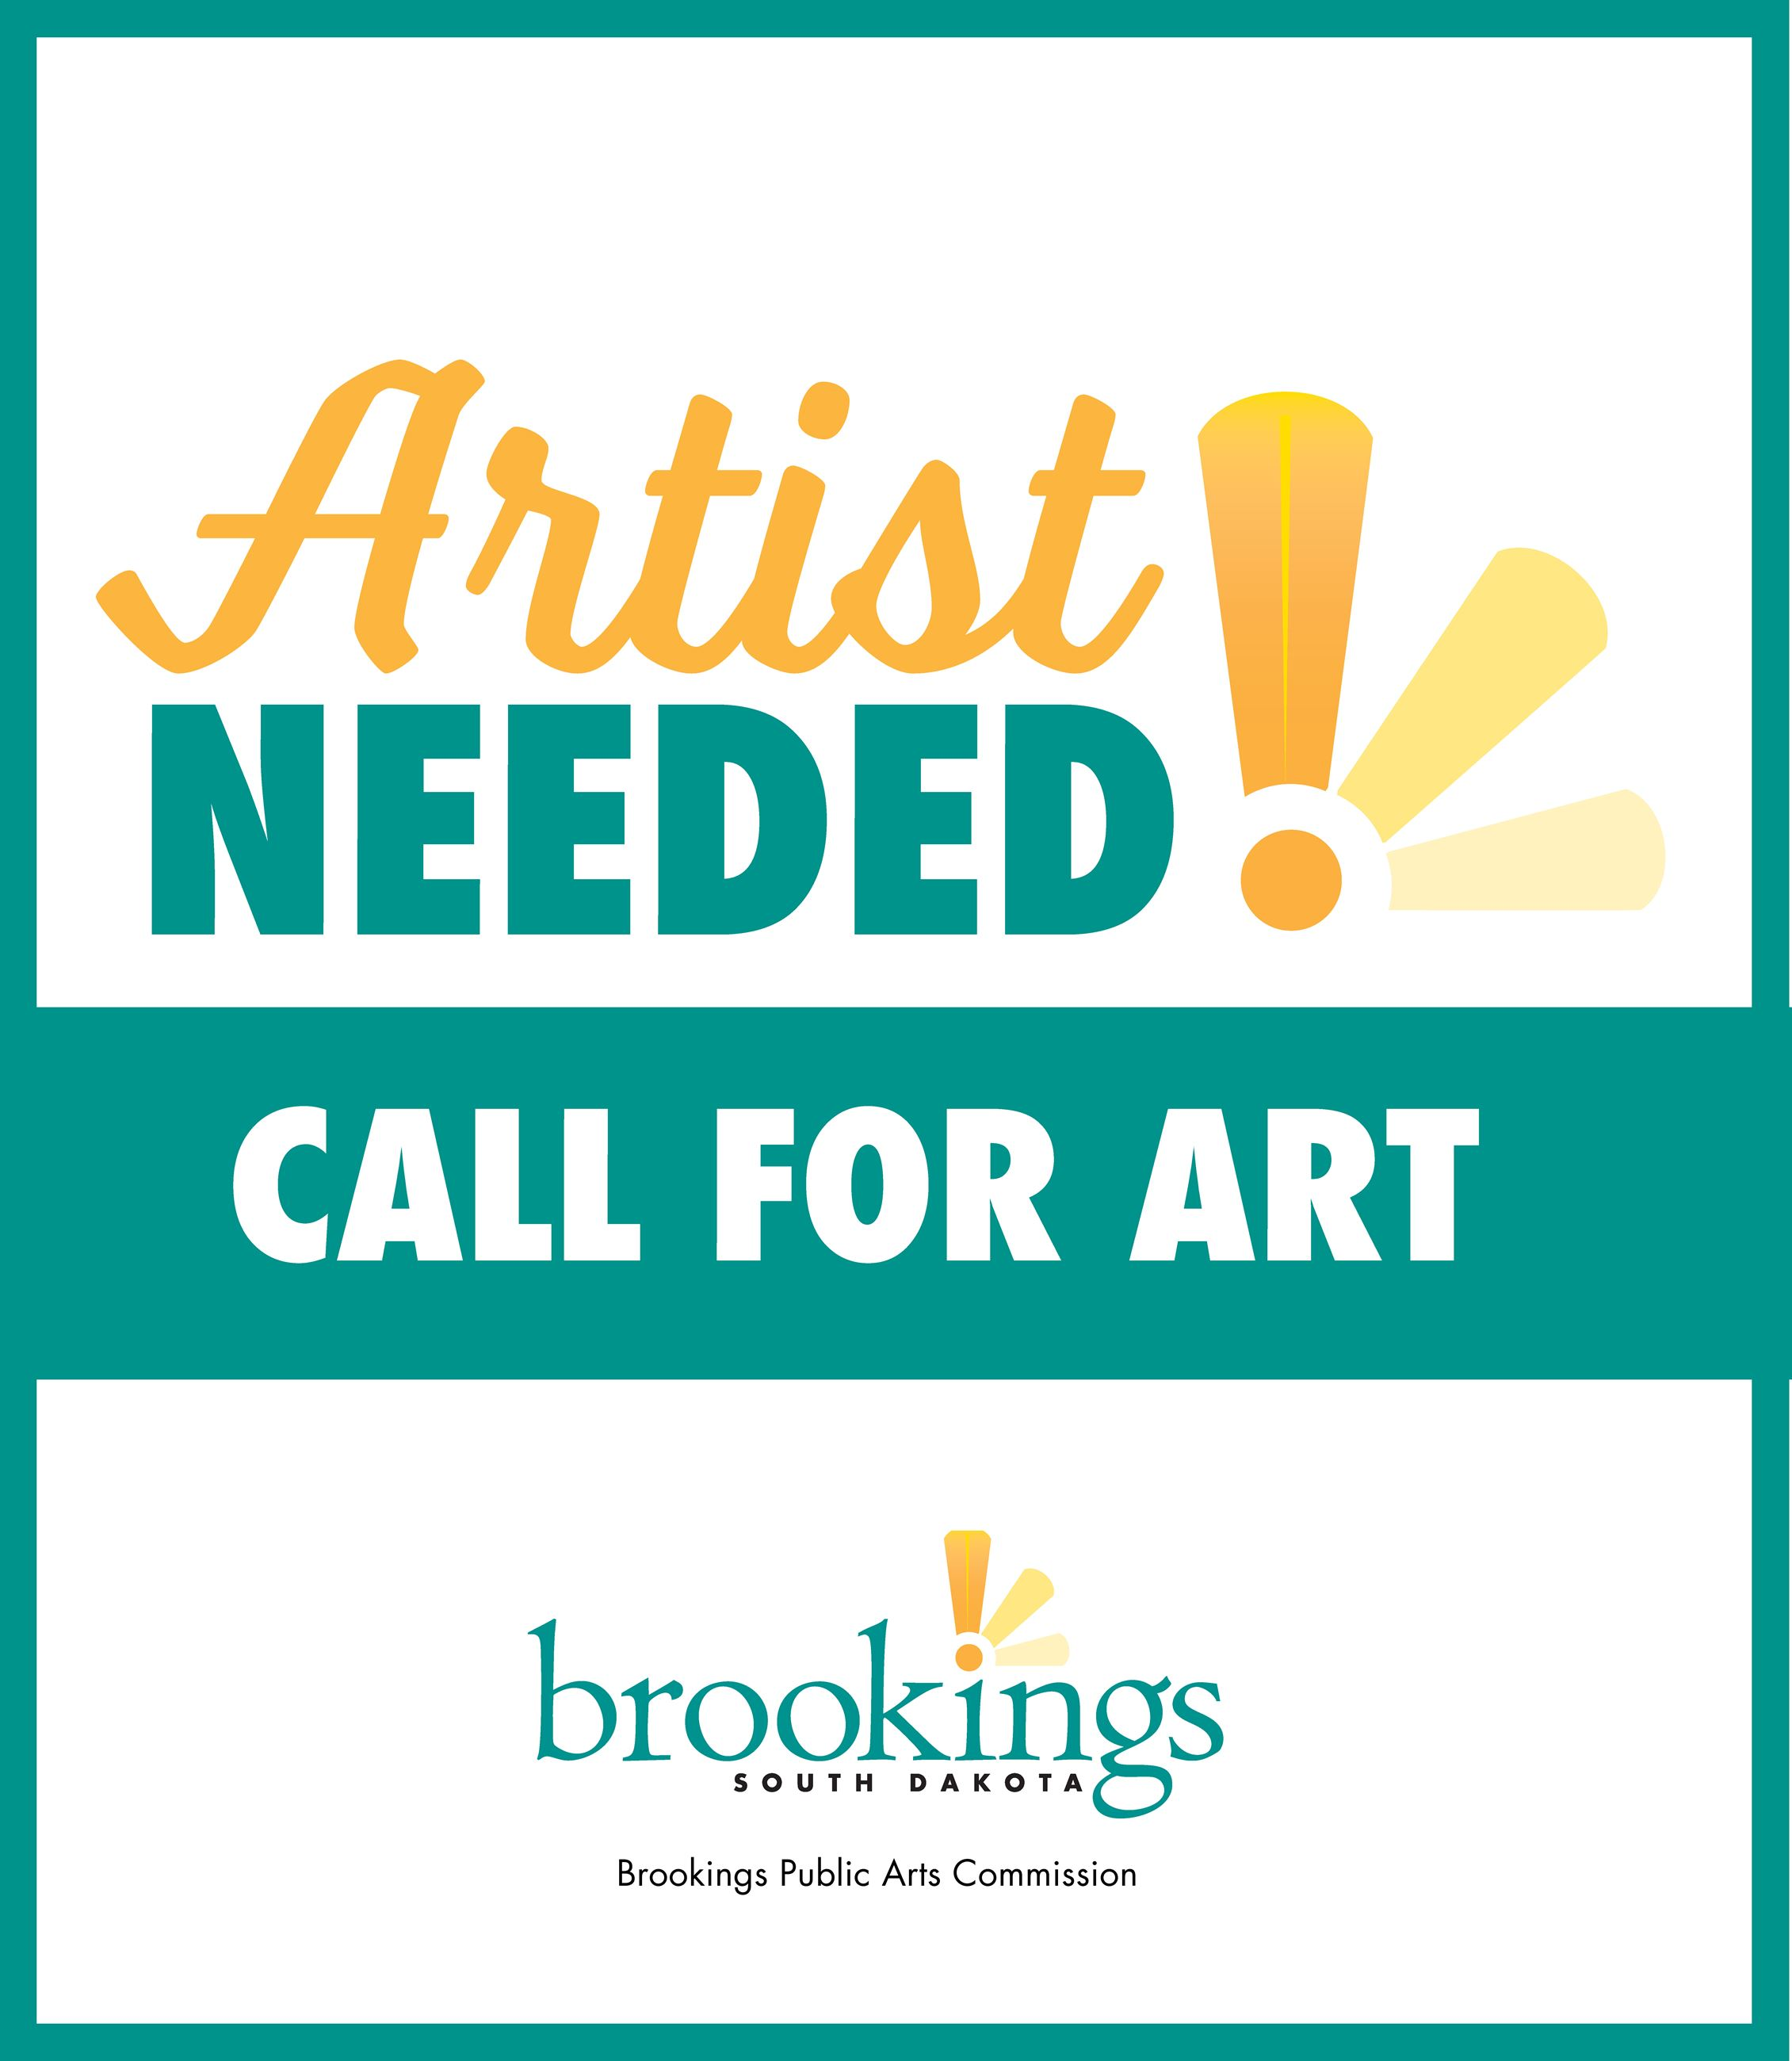 Graphic with text that says: Artist Needed Call for Art - Brookings Public Art Commission